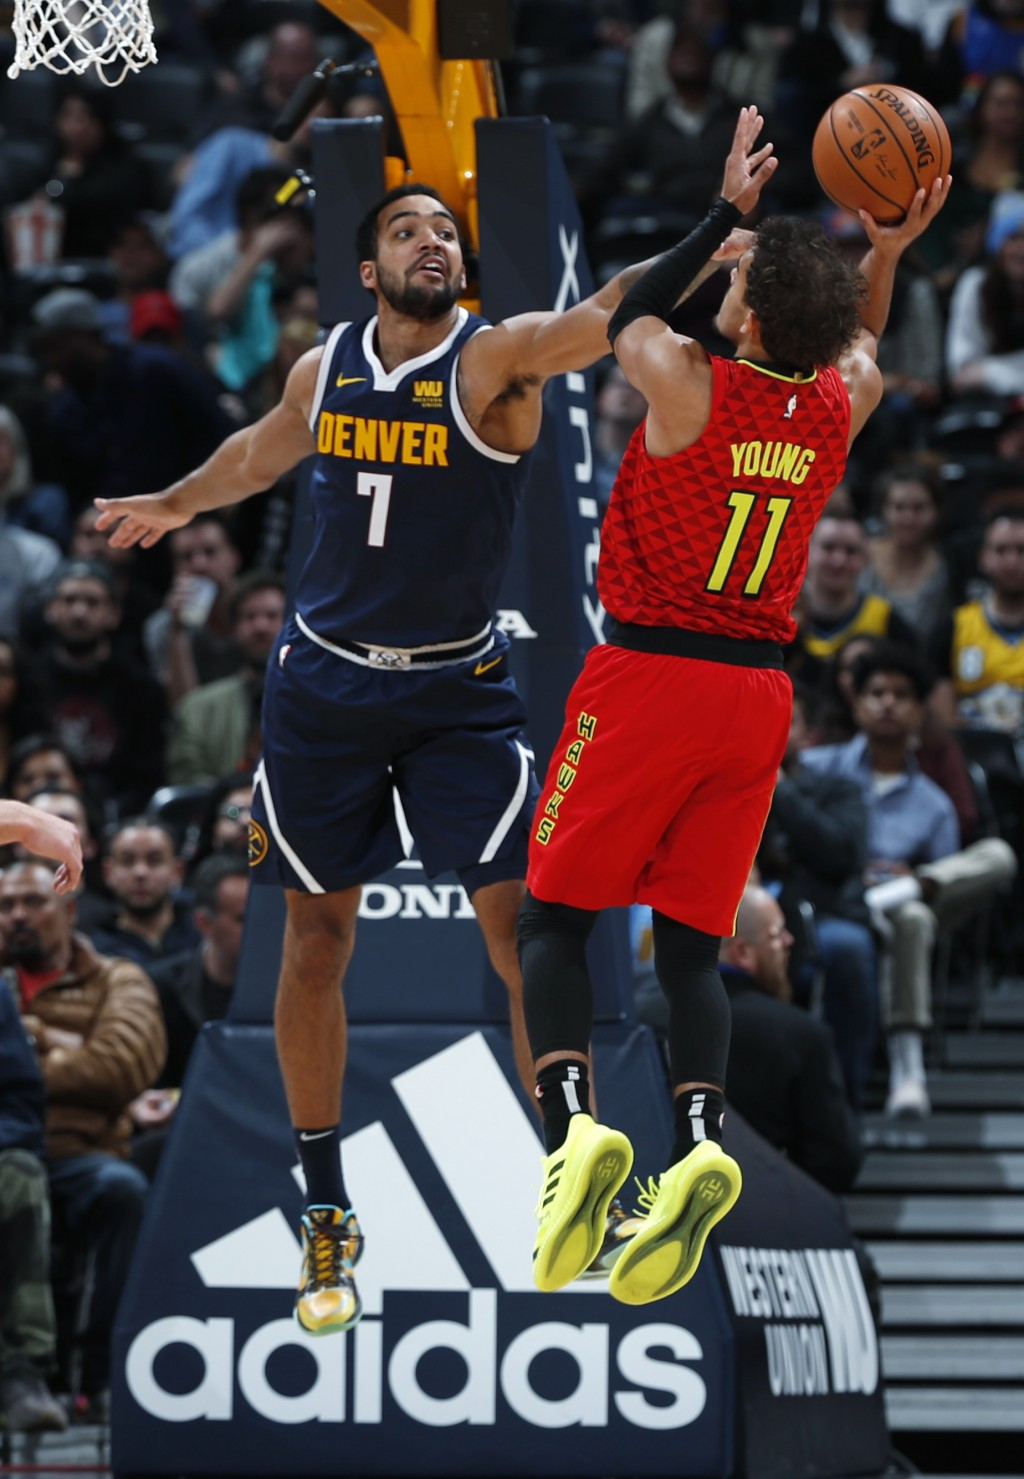 Denver Nuggets forward Trey Lyles, left, goes up to block a shot by Atlanta Hawks guard Trae Young in the second half of an NBA basketball game Thursd